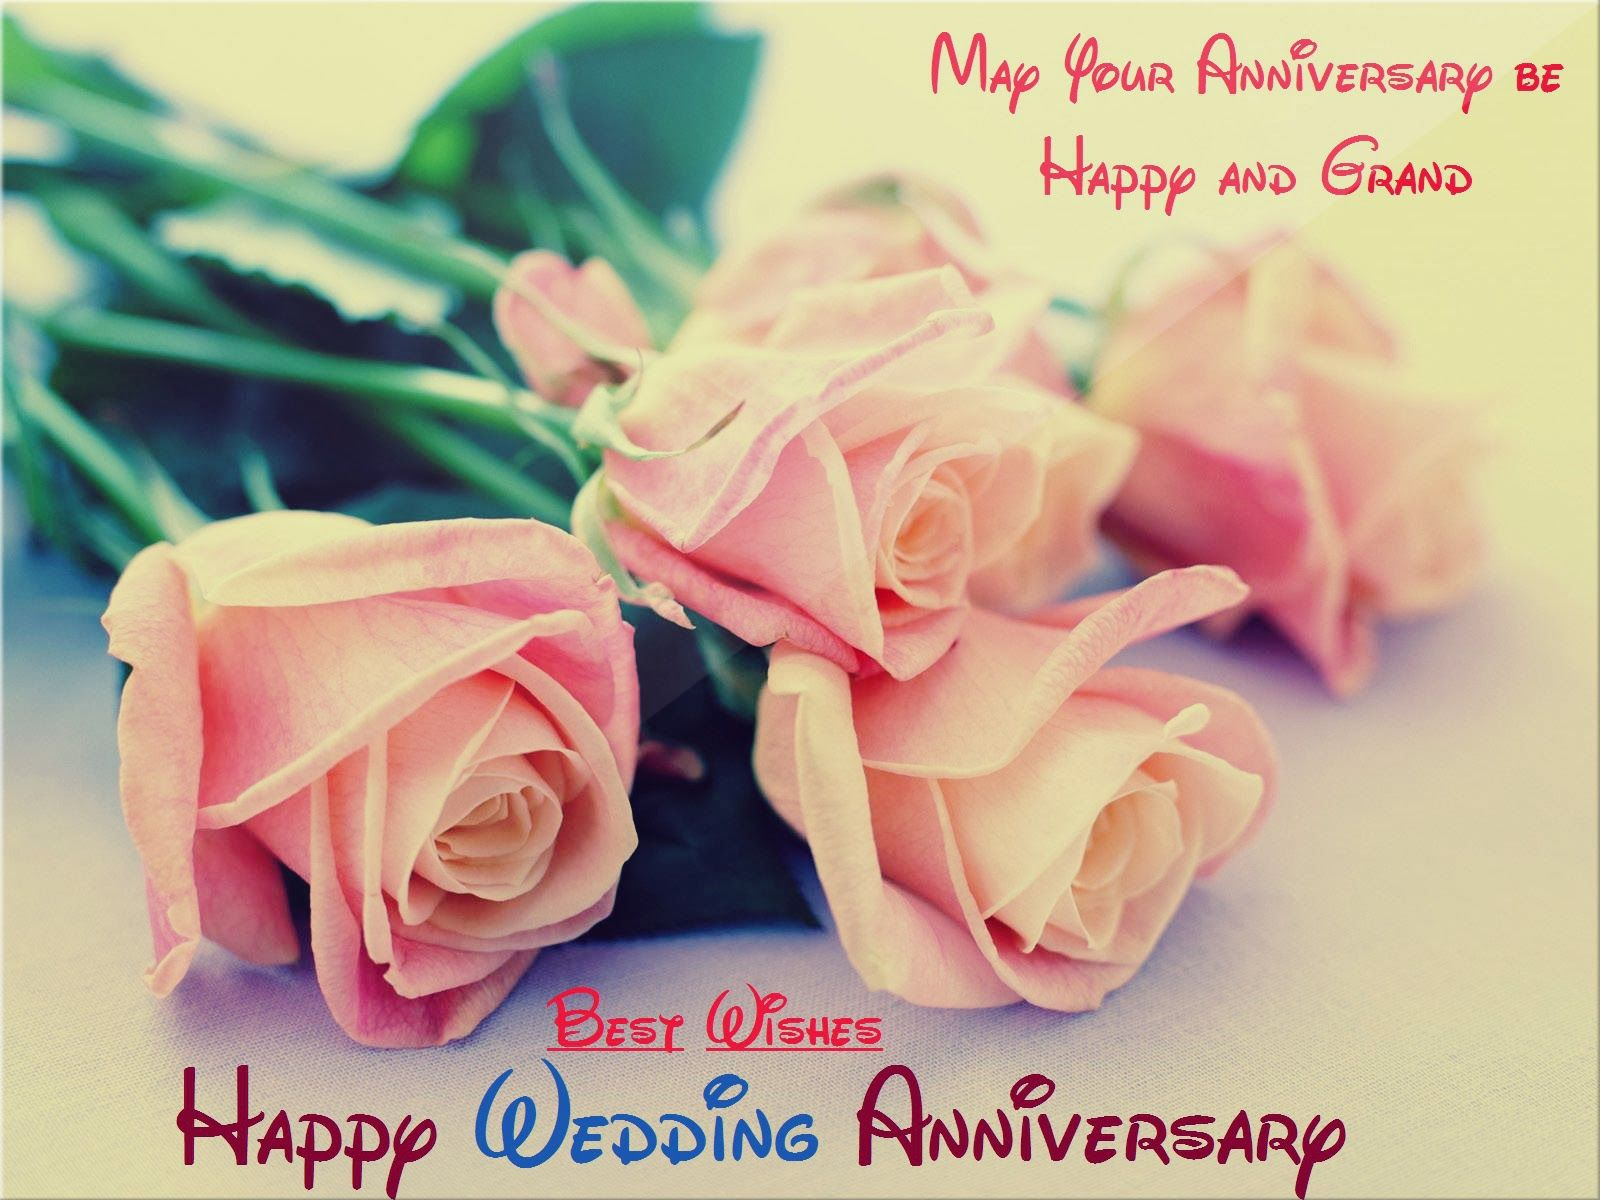 A Day to Remember Wedding anniversary wishes, Happy